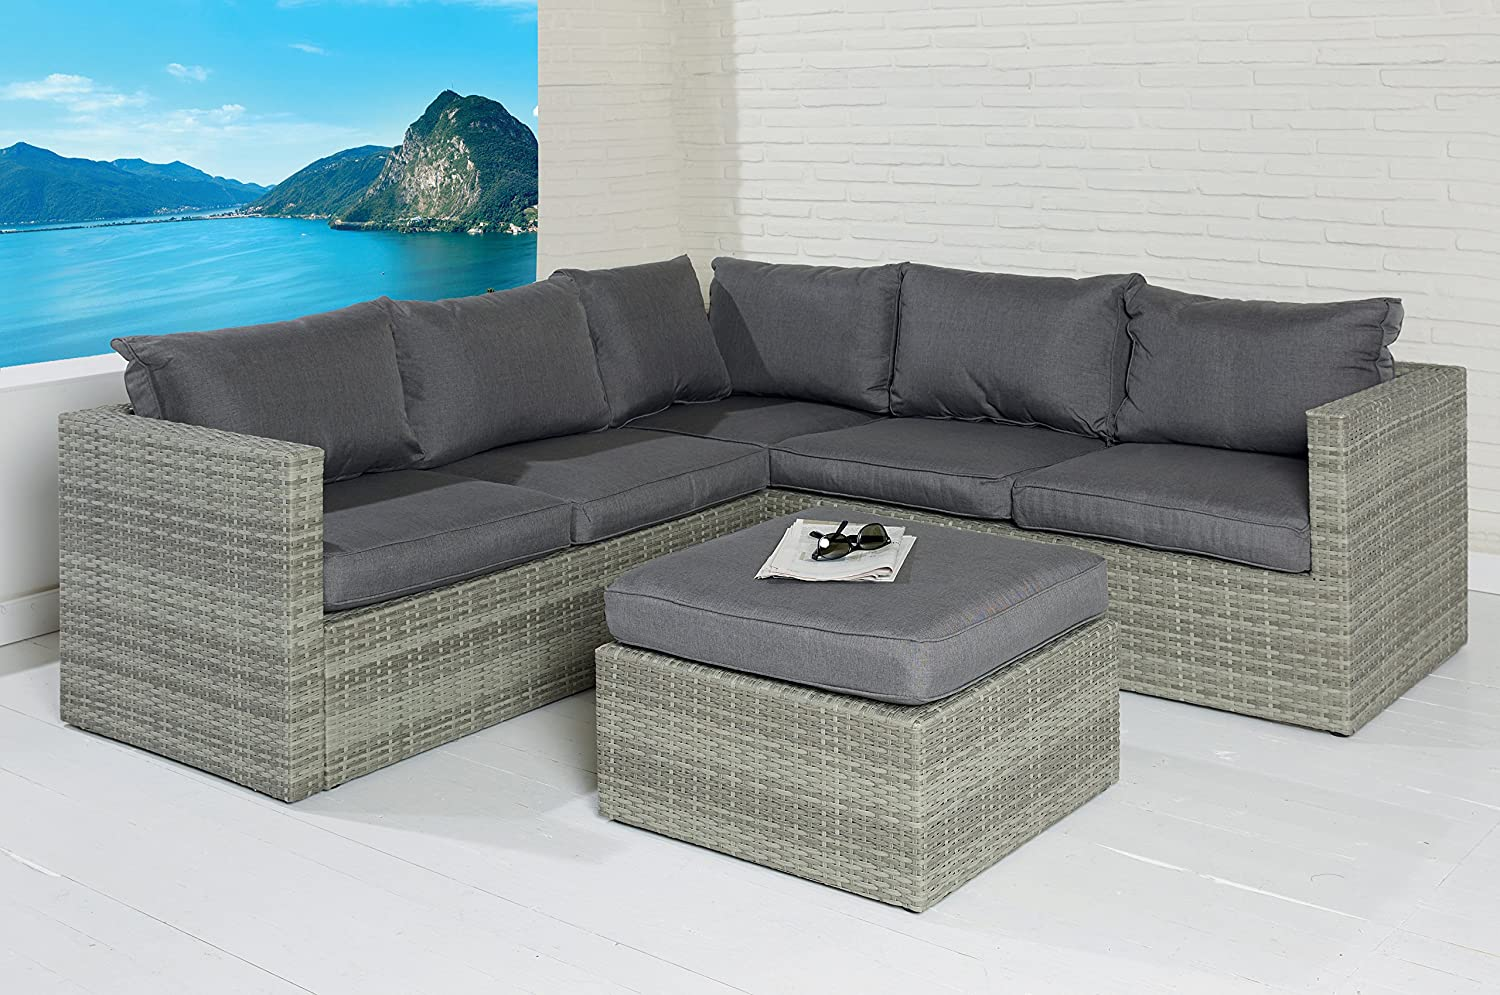 poly rattan sitzgruppe sofa lounge set grau gartenm bel terrassen garten gruppe g nstig kaufen. Black Bedroom Furniture Sets. Home Design Ideas